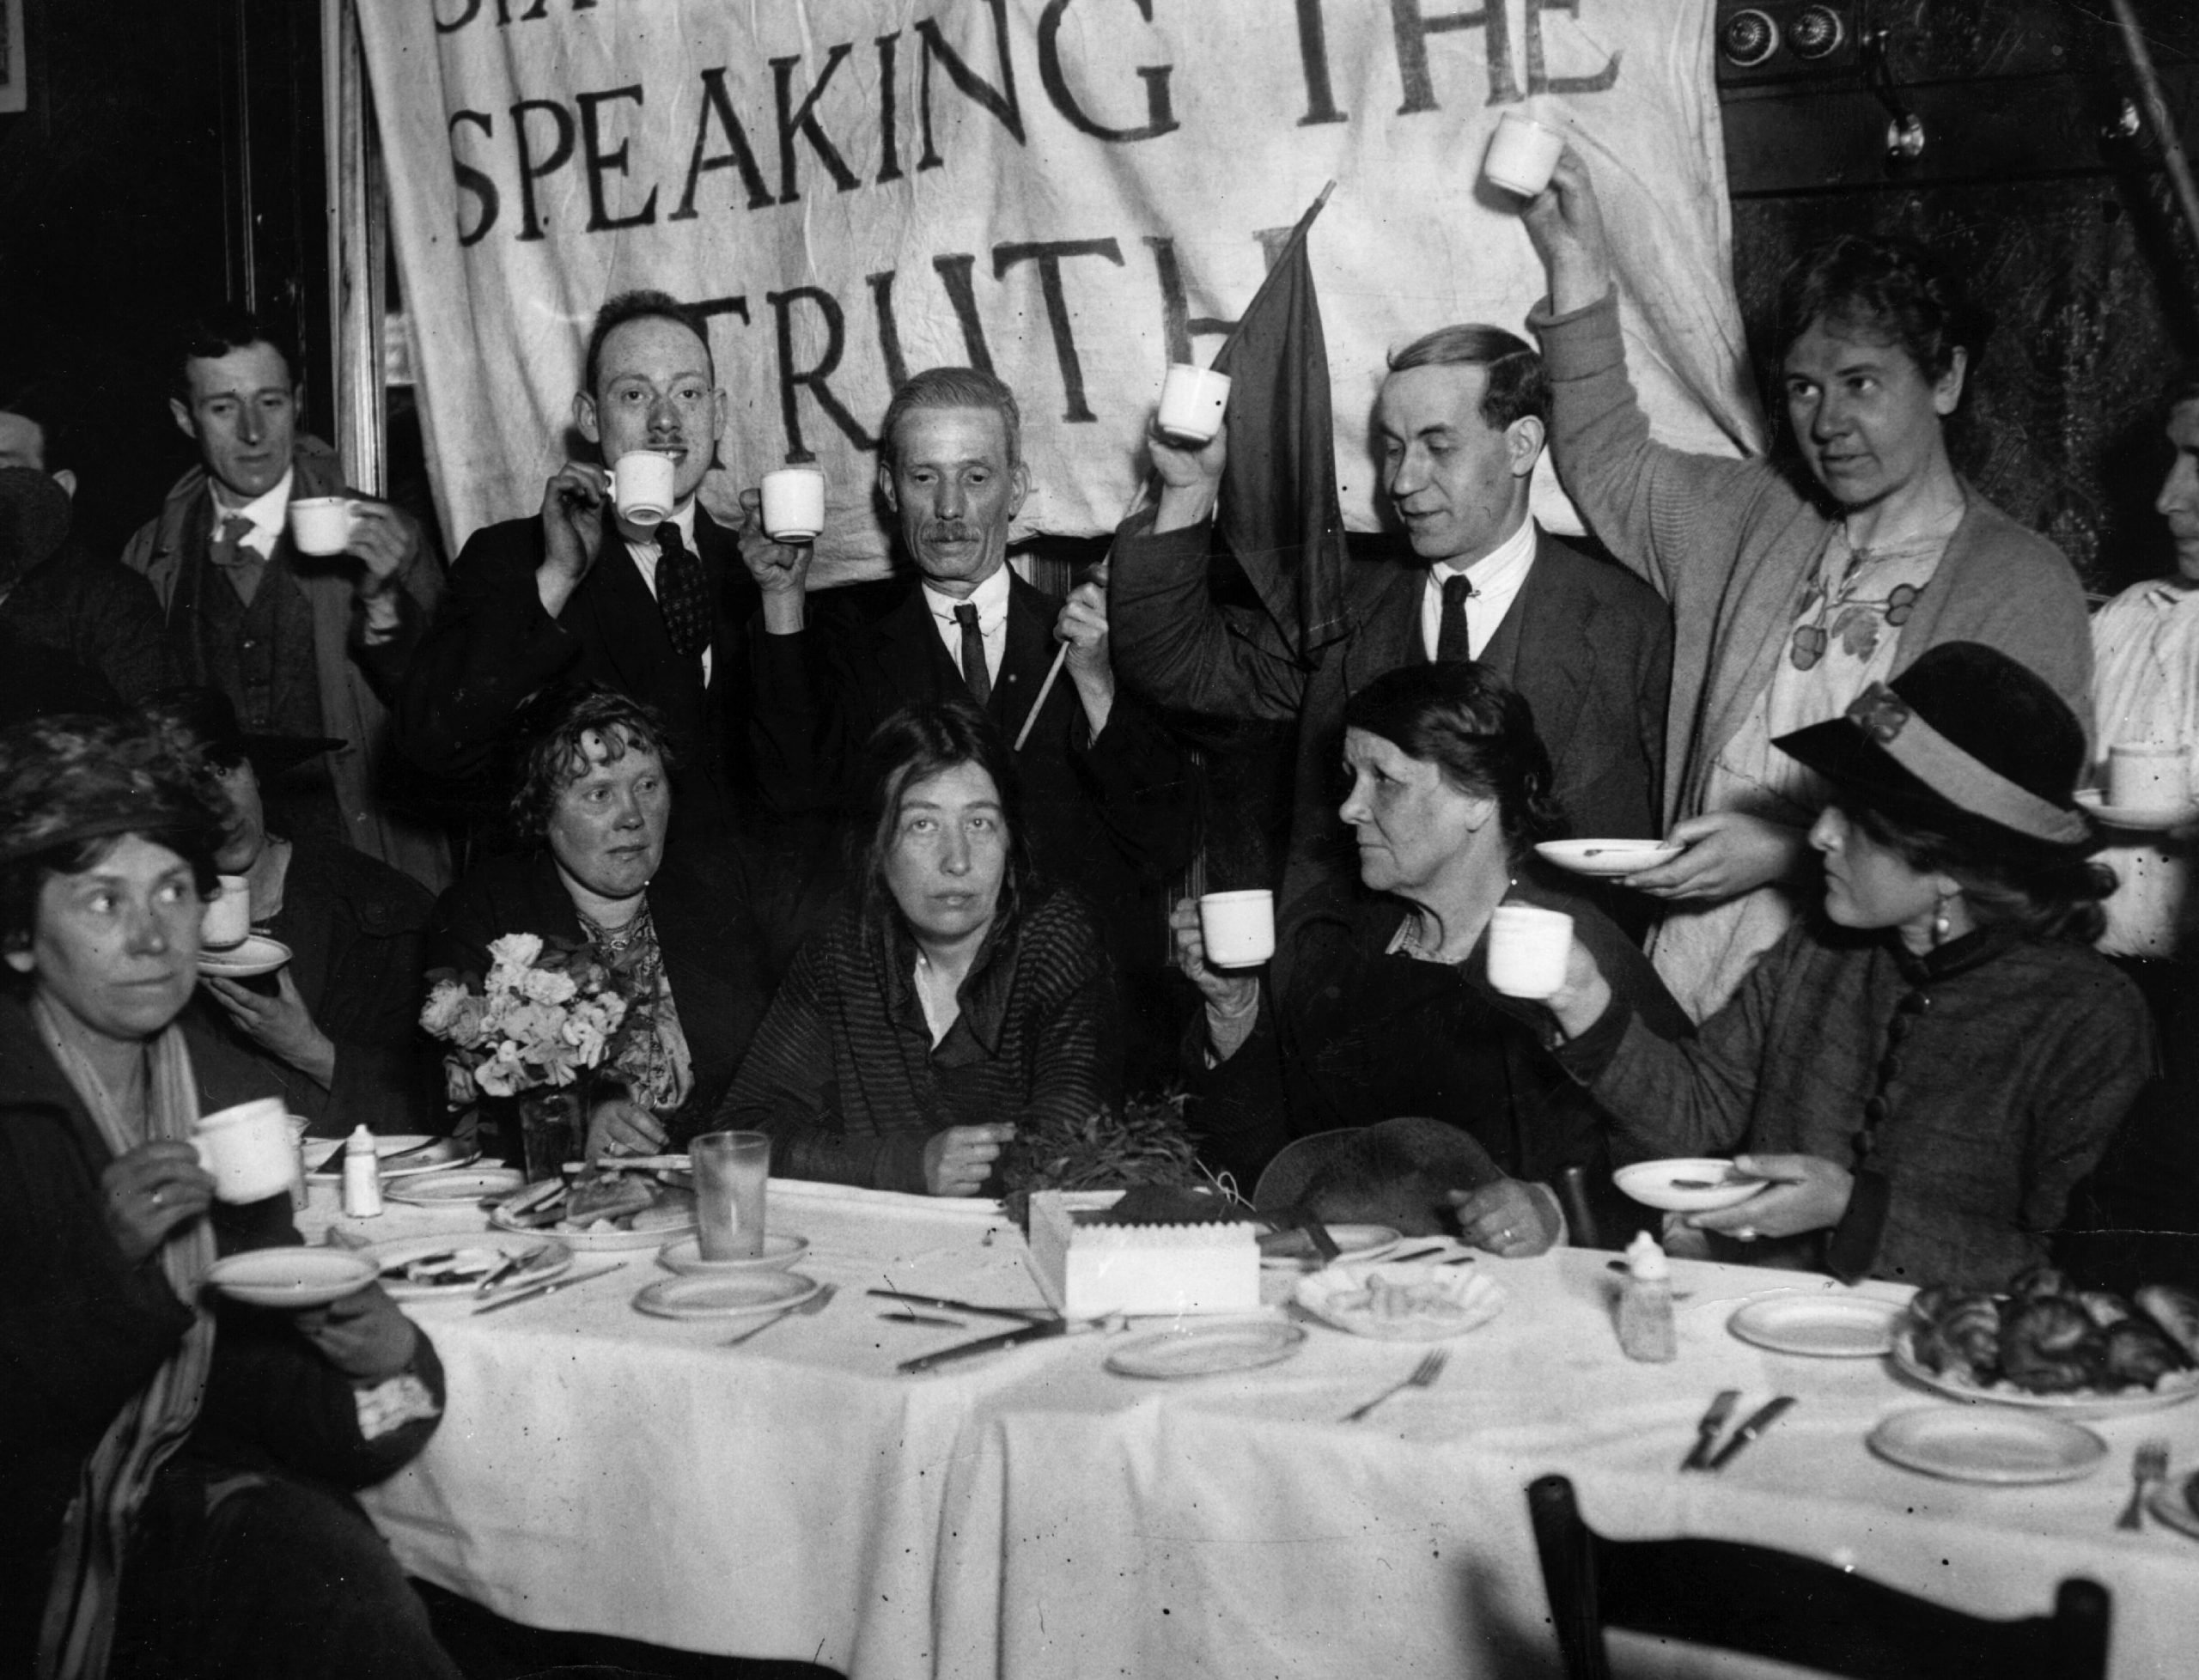 Sylvia Pankhurst being toasted at a breakfast celebrating her most recent release from prison